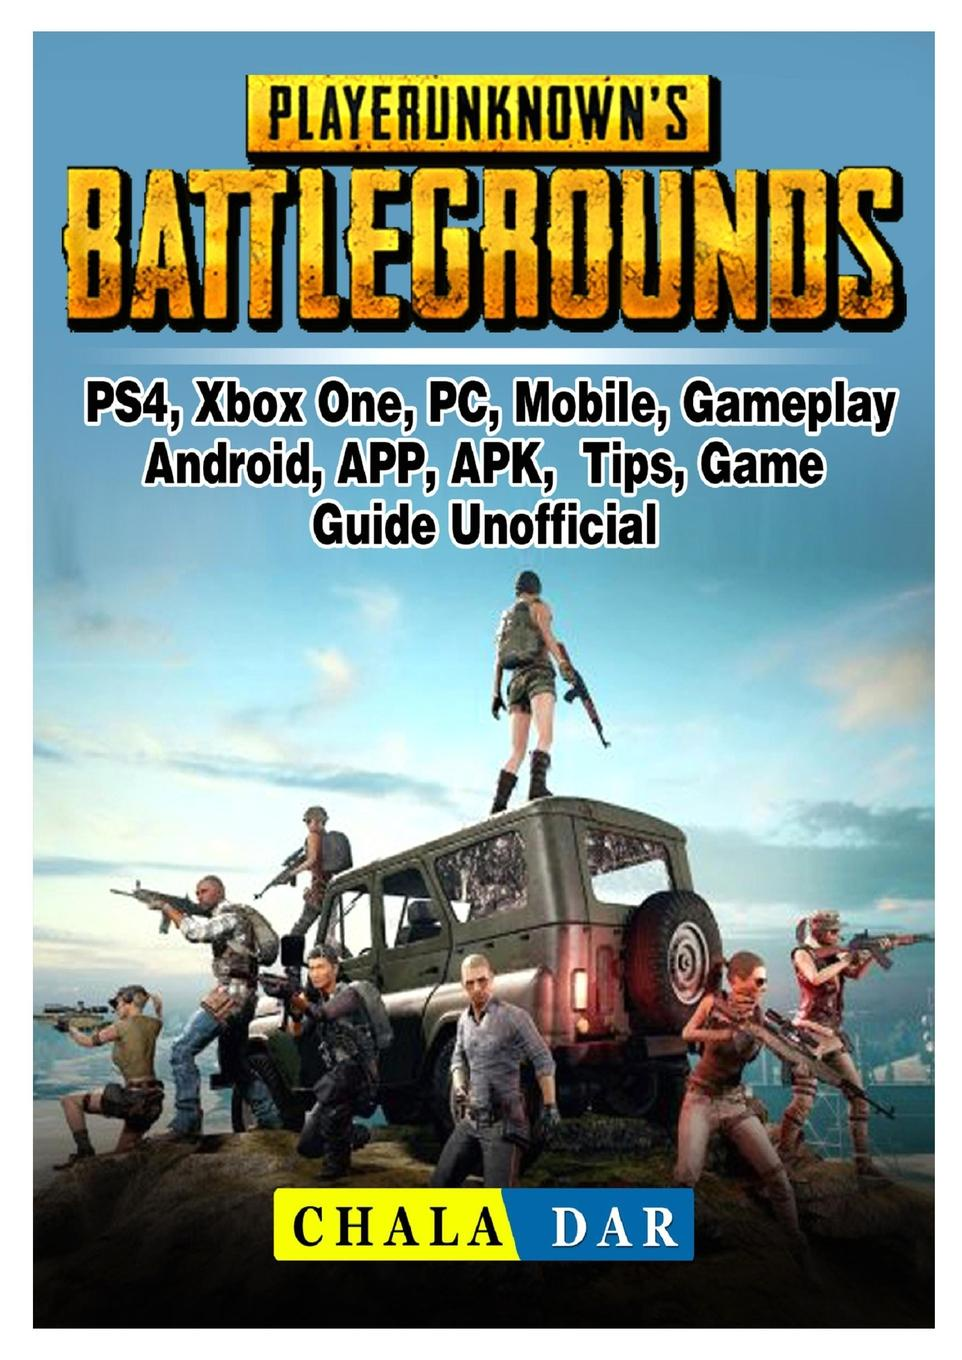 где купить Chala Dar Player Unknowns Battlegrounds, PS4, Xbox One, PC, Mobile, Gameplay, Android, APP, APK, Tips, Game Guide Unofficial по лучшей цене